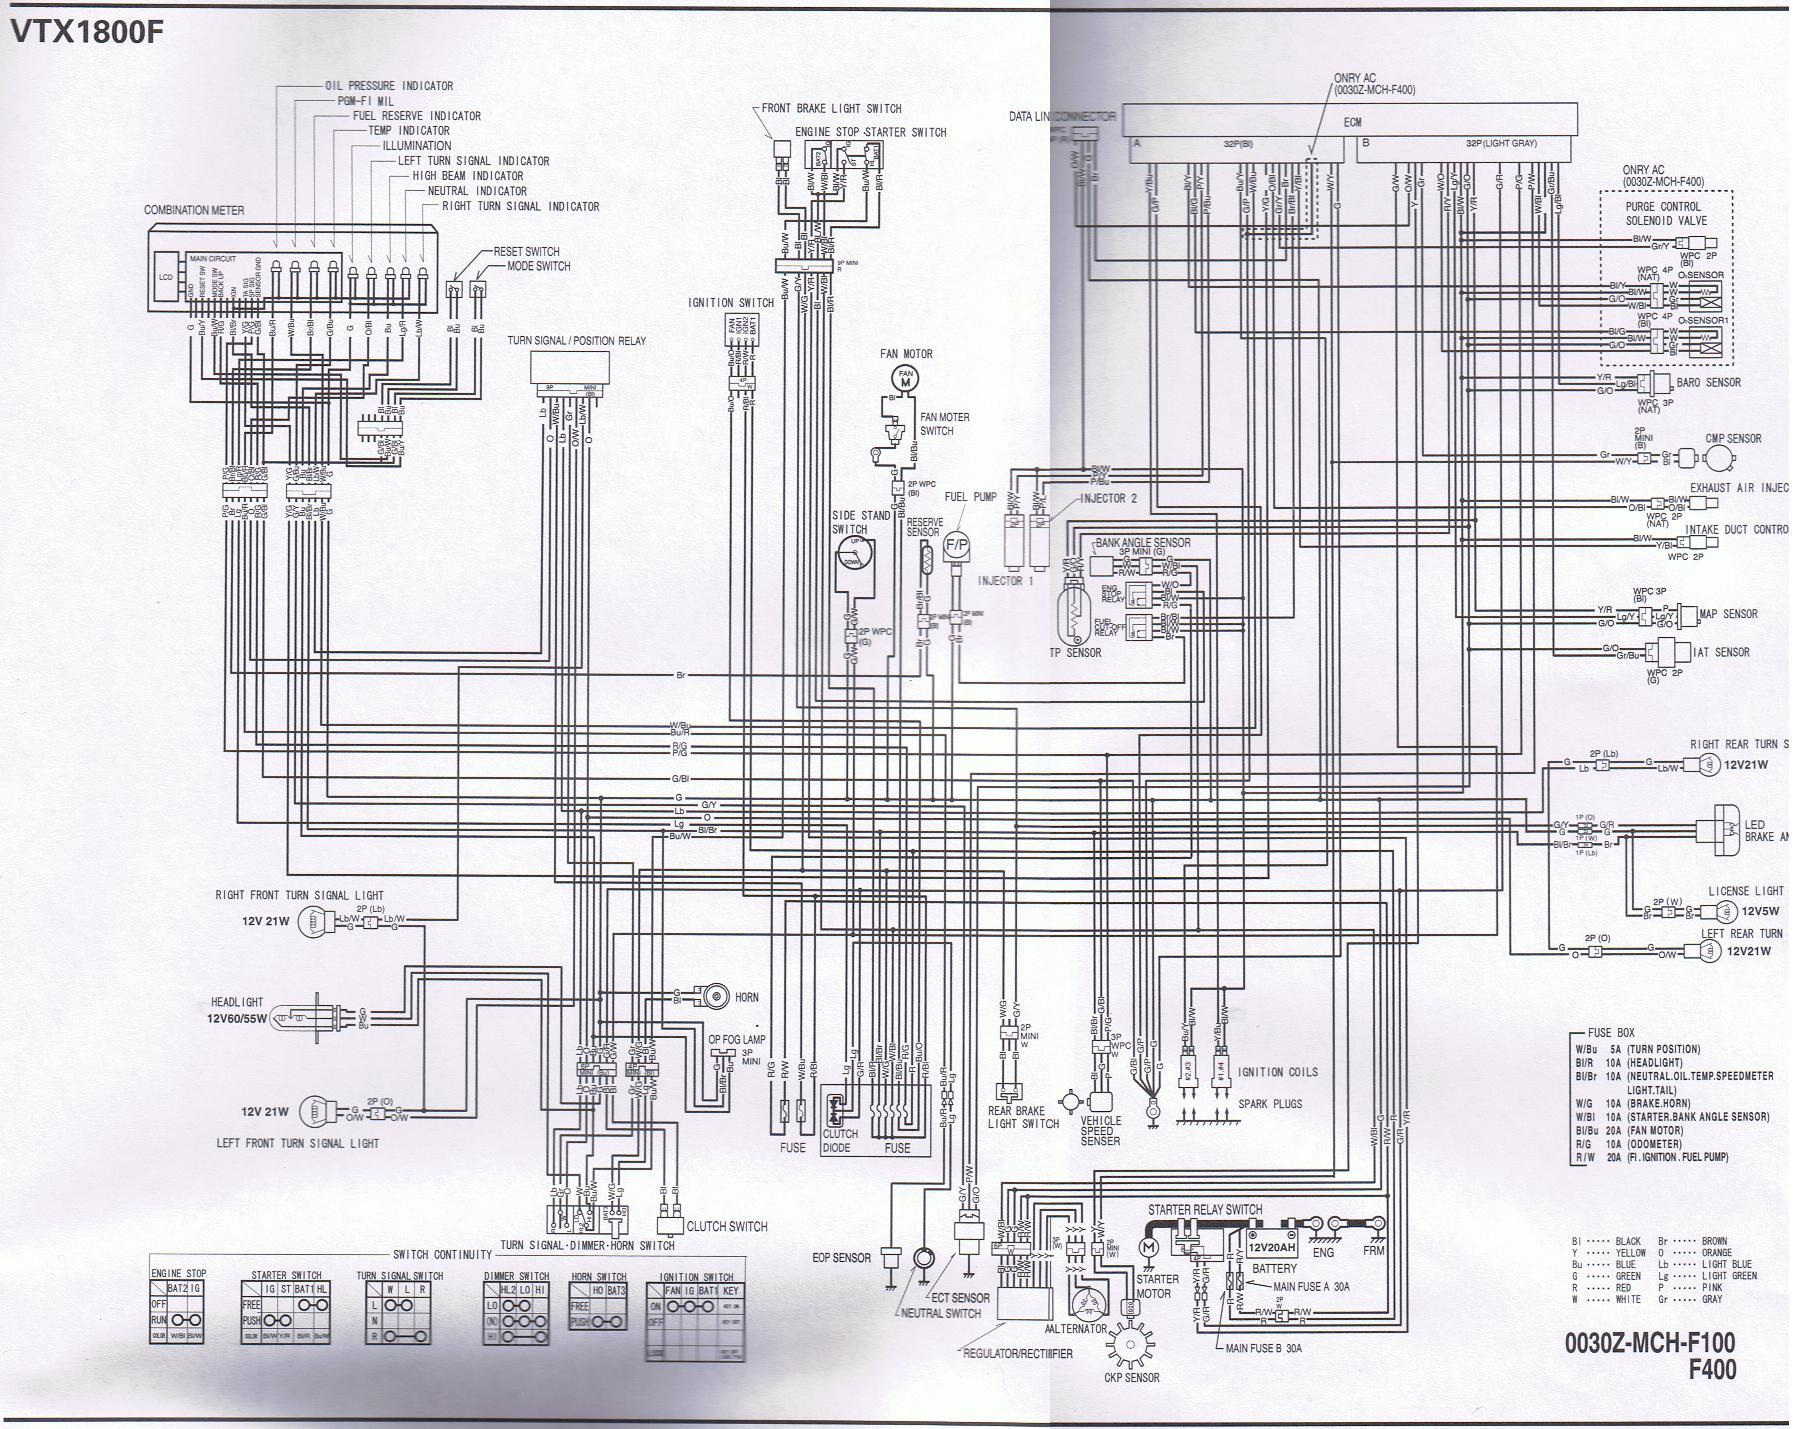 05+_VTX1800_F_schematic motorcycle wire schematics bareass choppers motorcycle tech pages 2007 honda vtx 1300 r wiring diagram at n-0.co